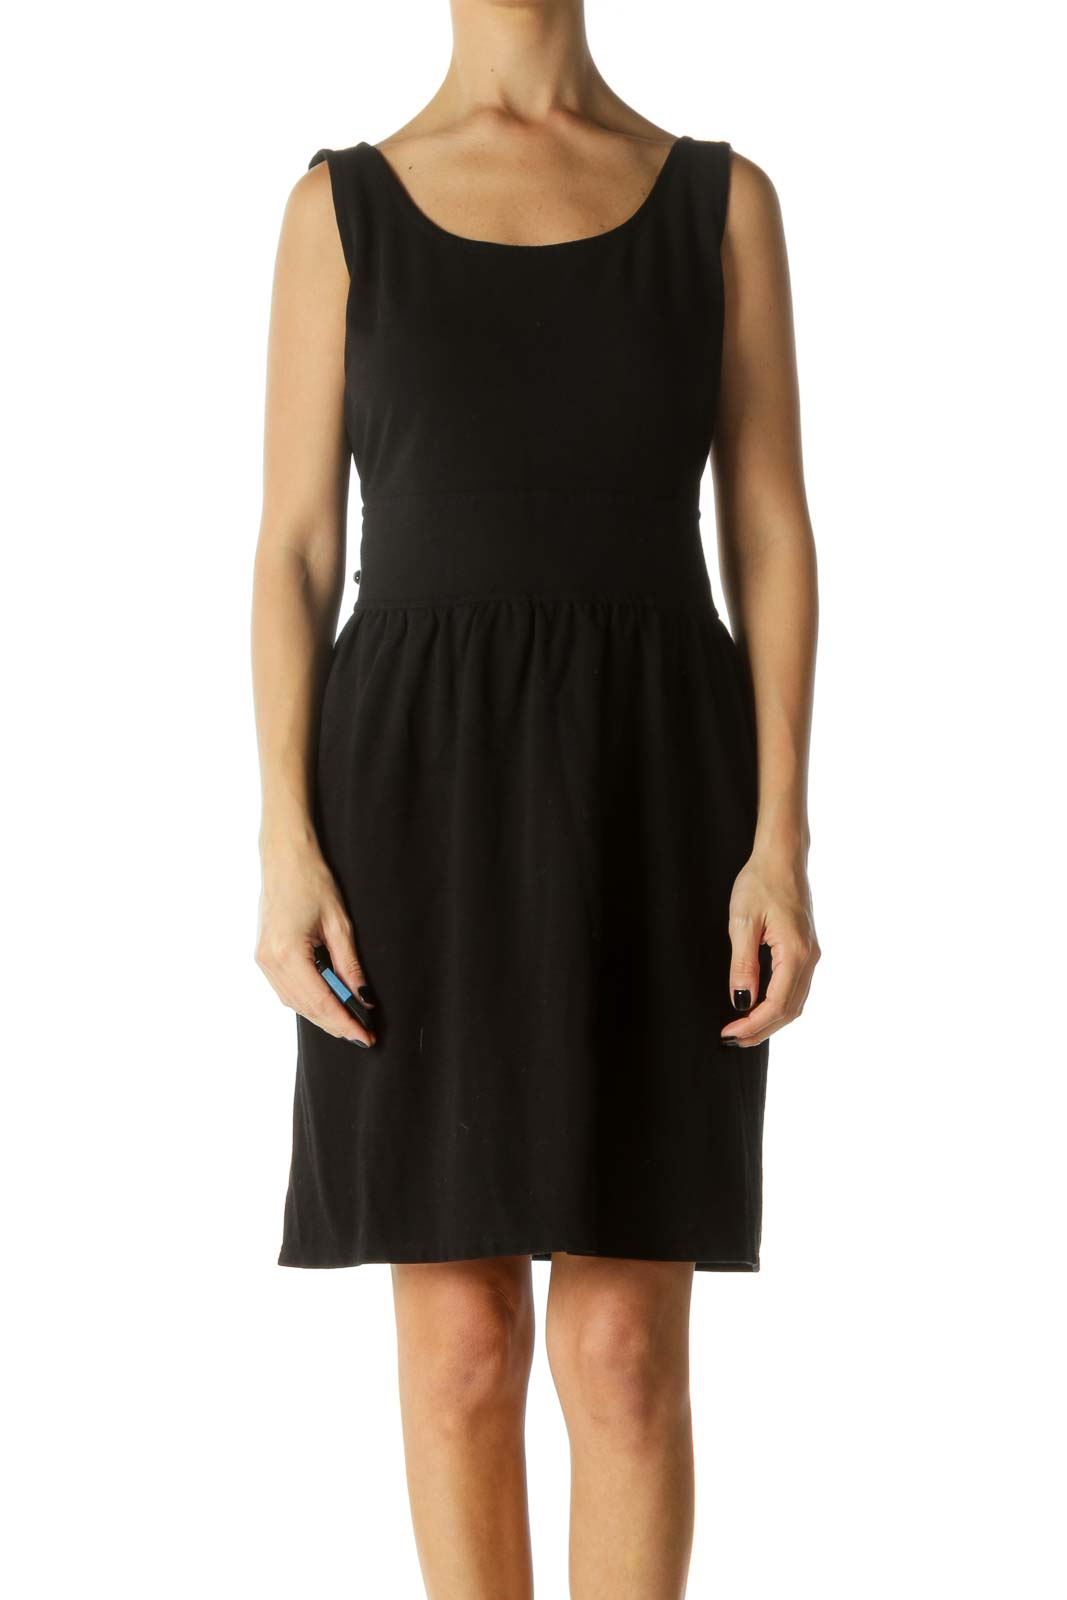 Black Sleeveless Zippered Round Neck Knit Dress